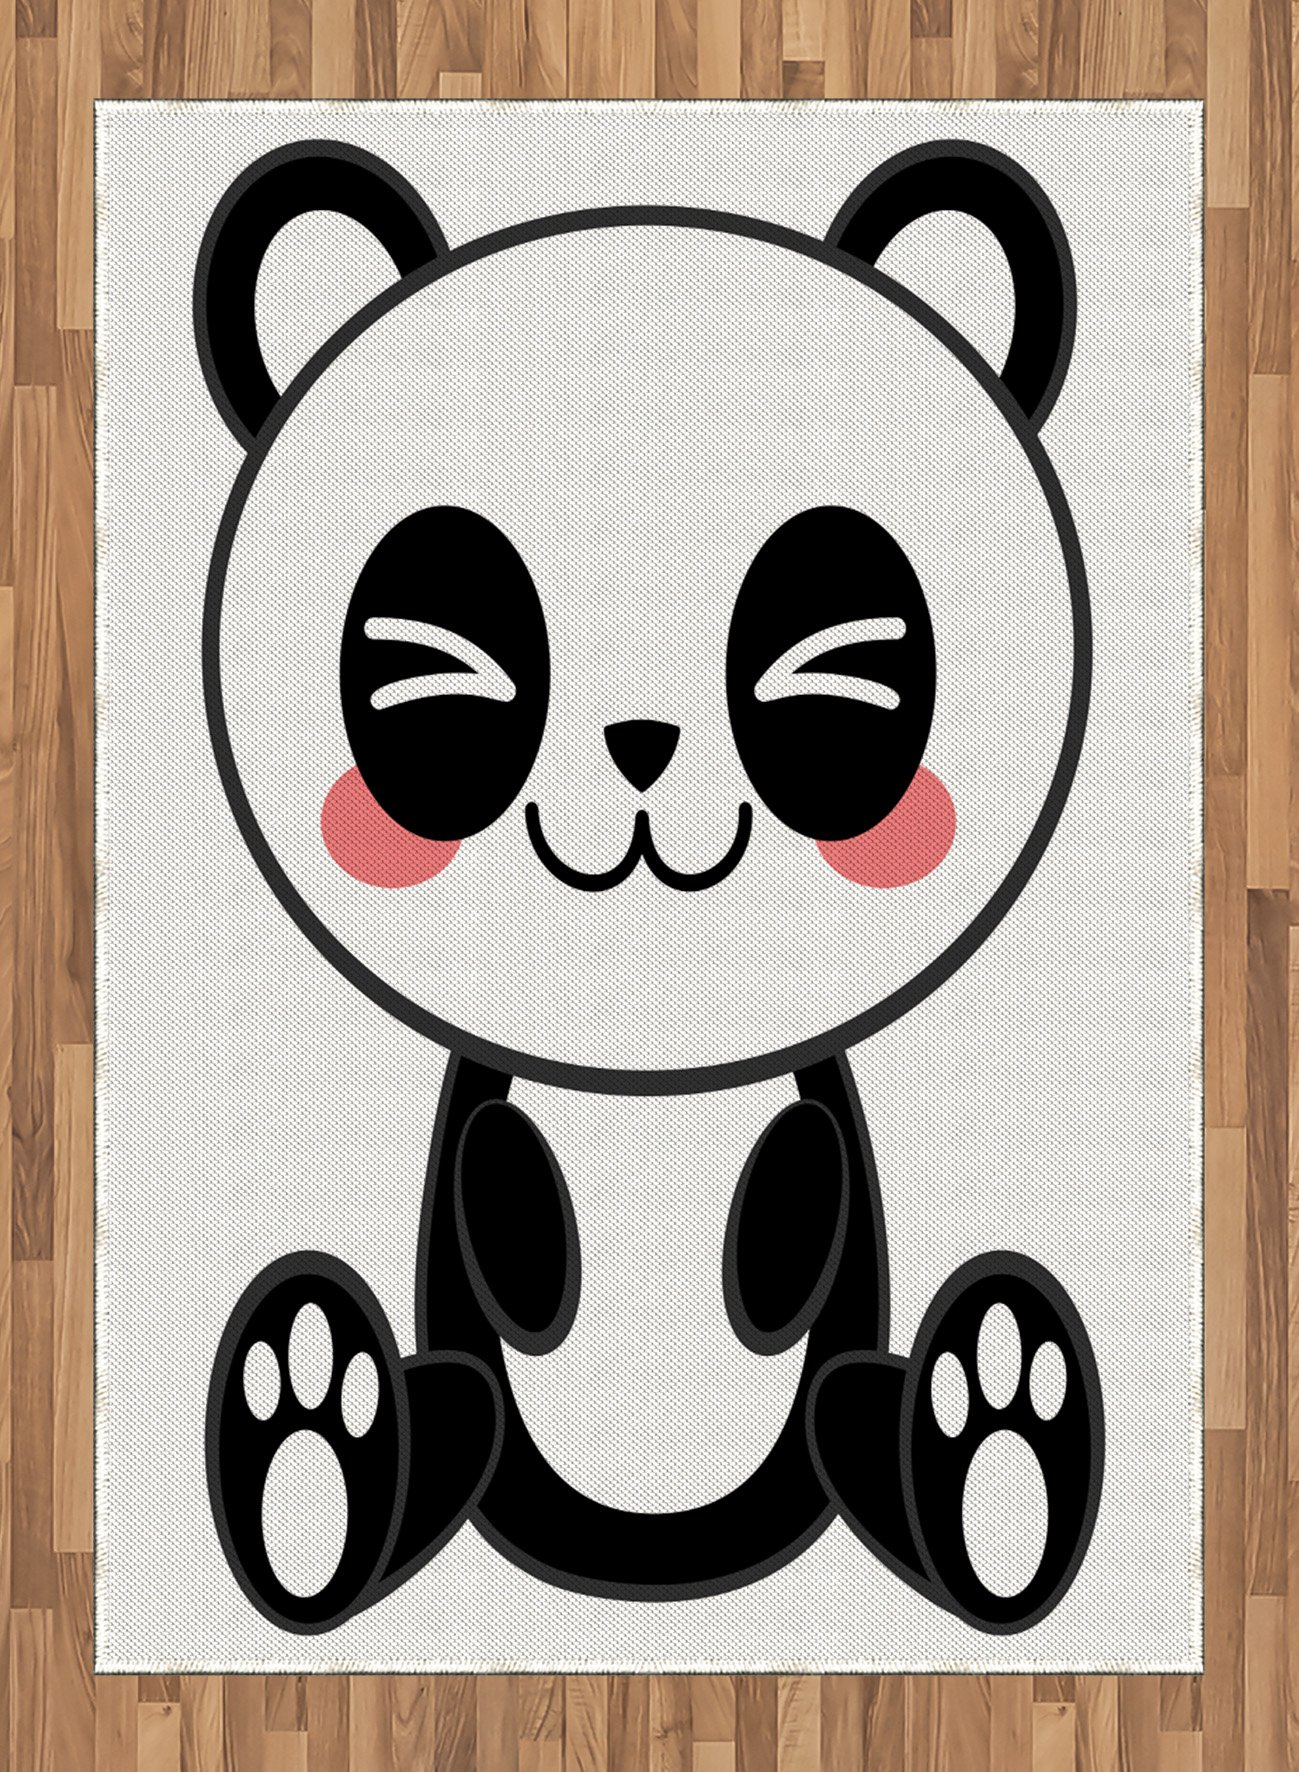 Anime Area Rug by Ambesonne, Cute Cartoon Smiling Panda Fun Animal Theme Japanese Manga Kids Teen Art Print, Flat Woven Accent Rug for Living Room Bedroom Dining Room, 5.2 x 7.5 FT, Black White Gray